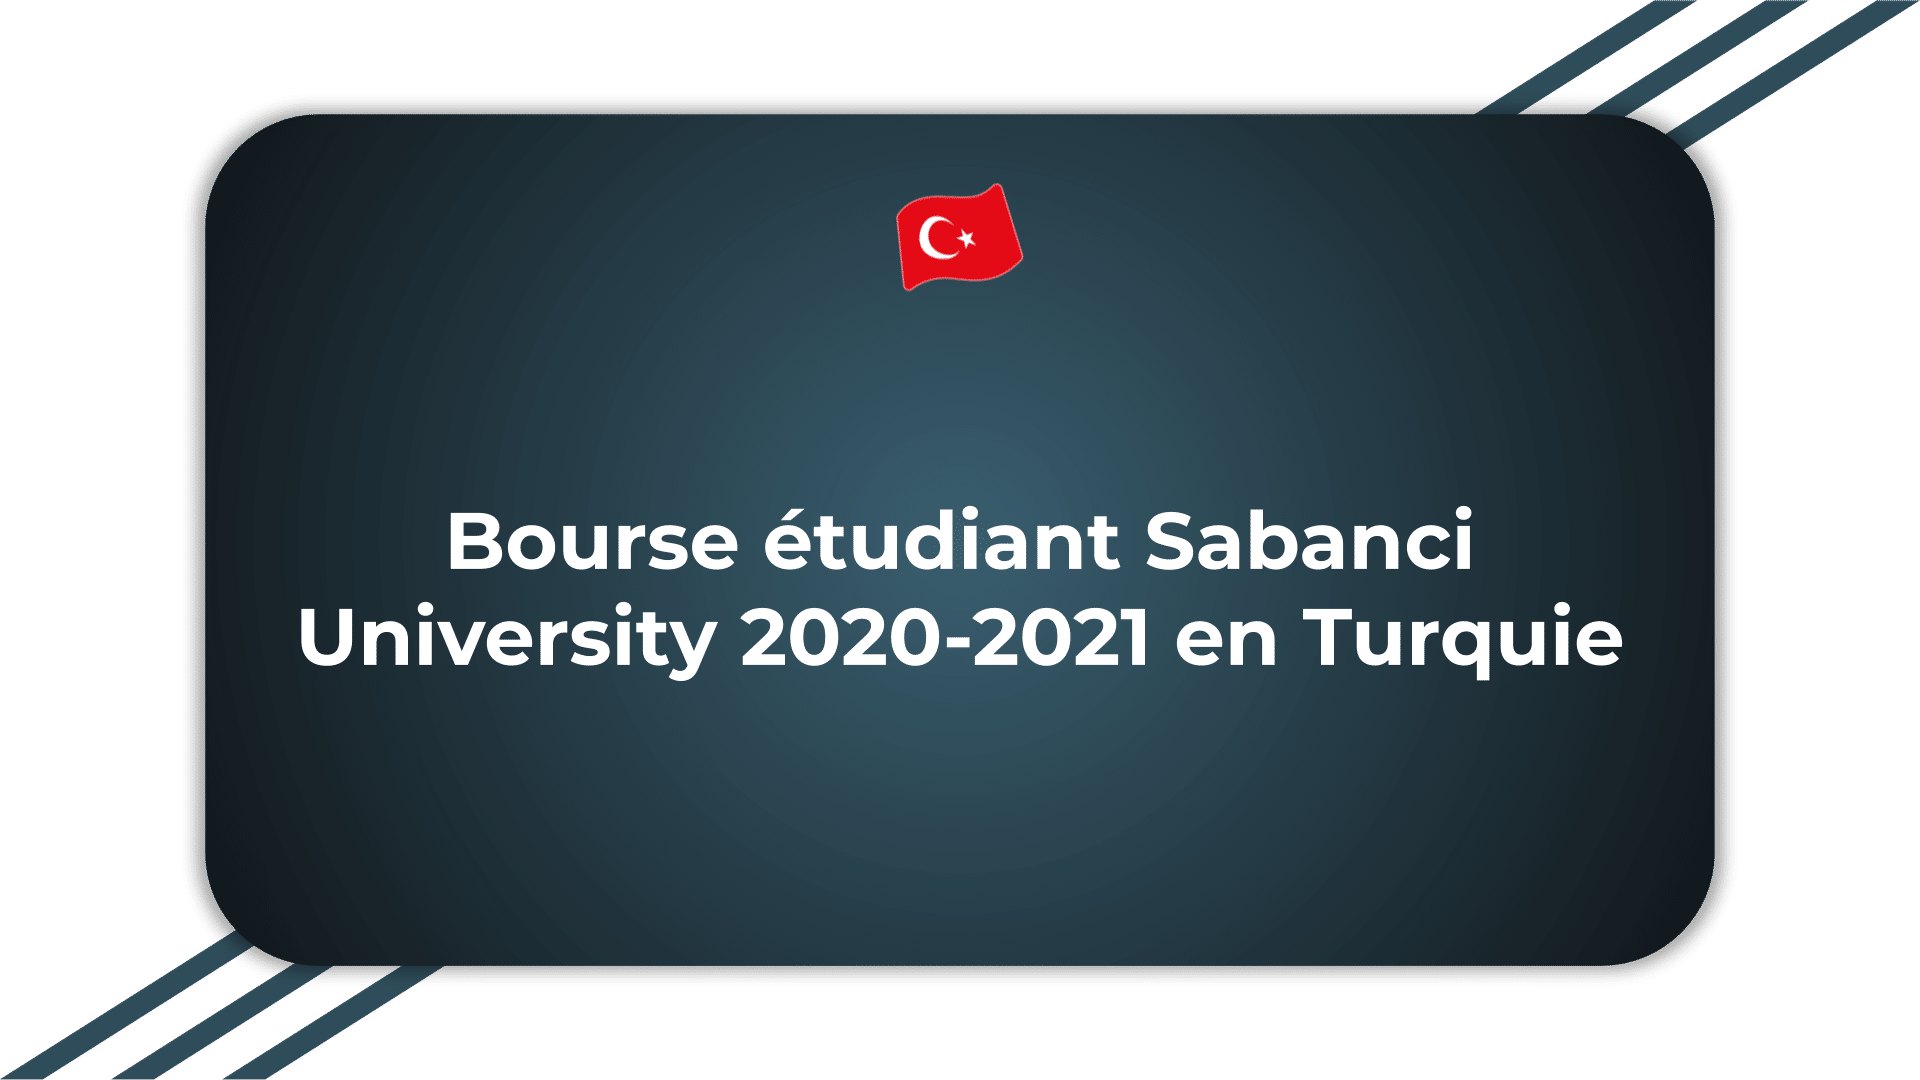 Bourse étudiant Sabanci University